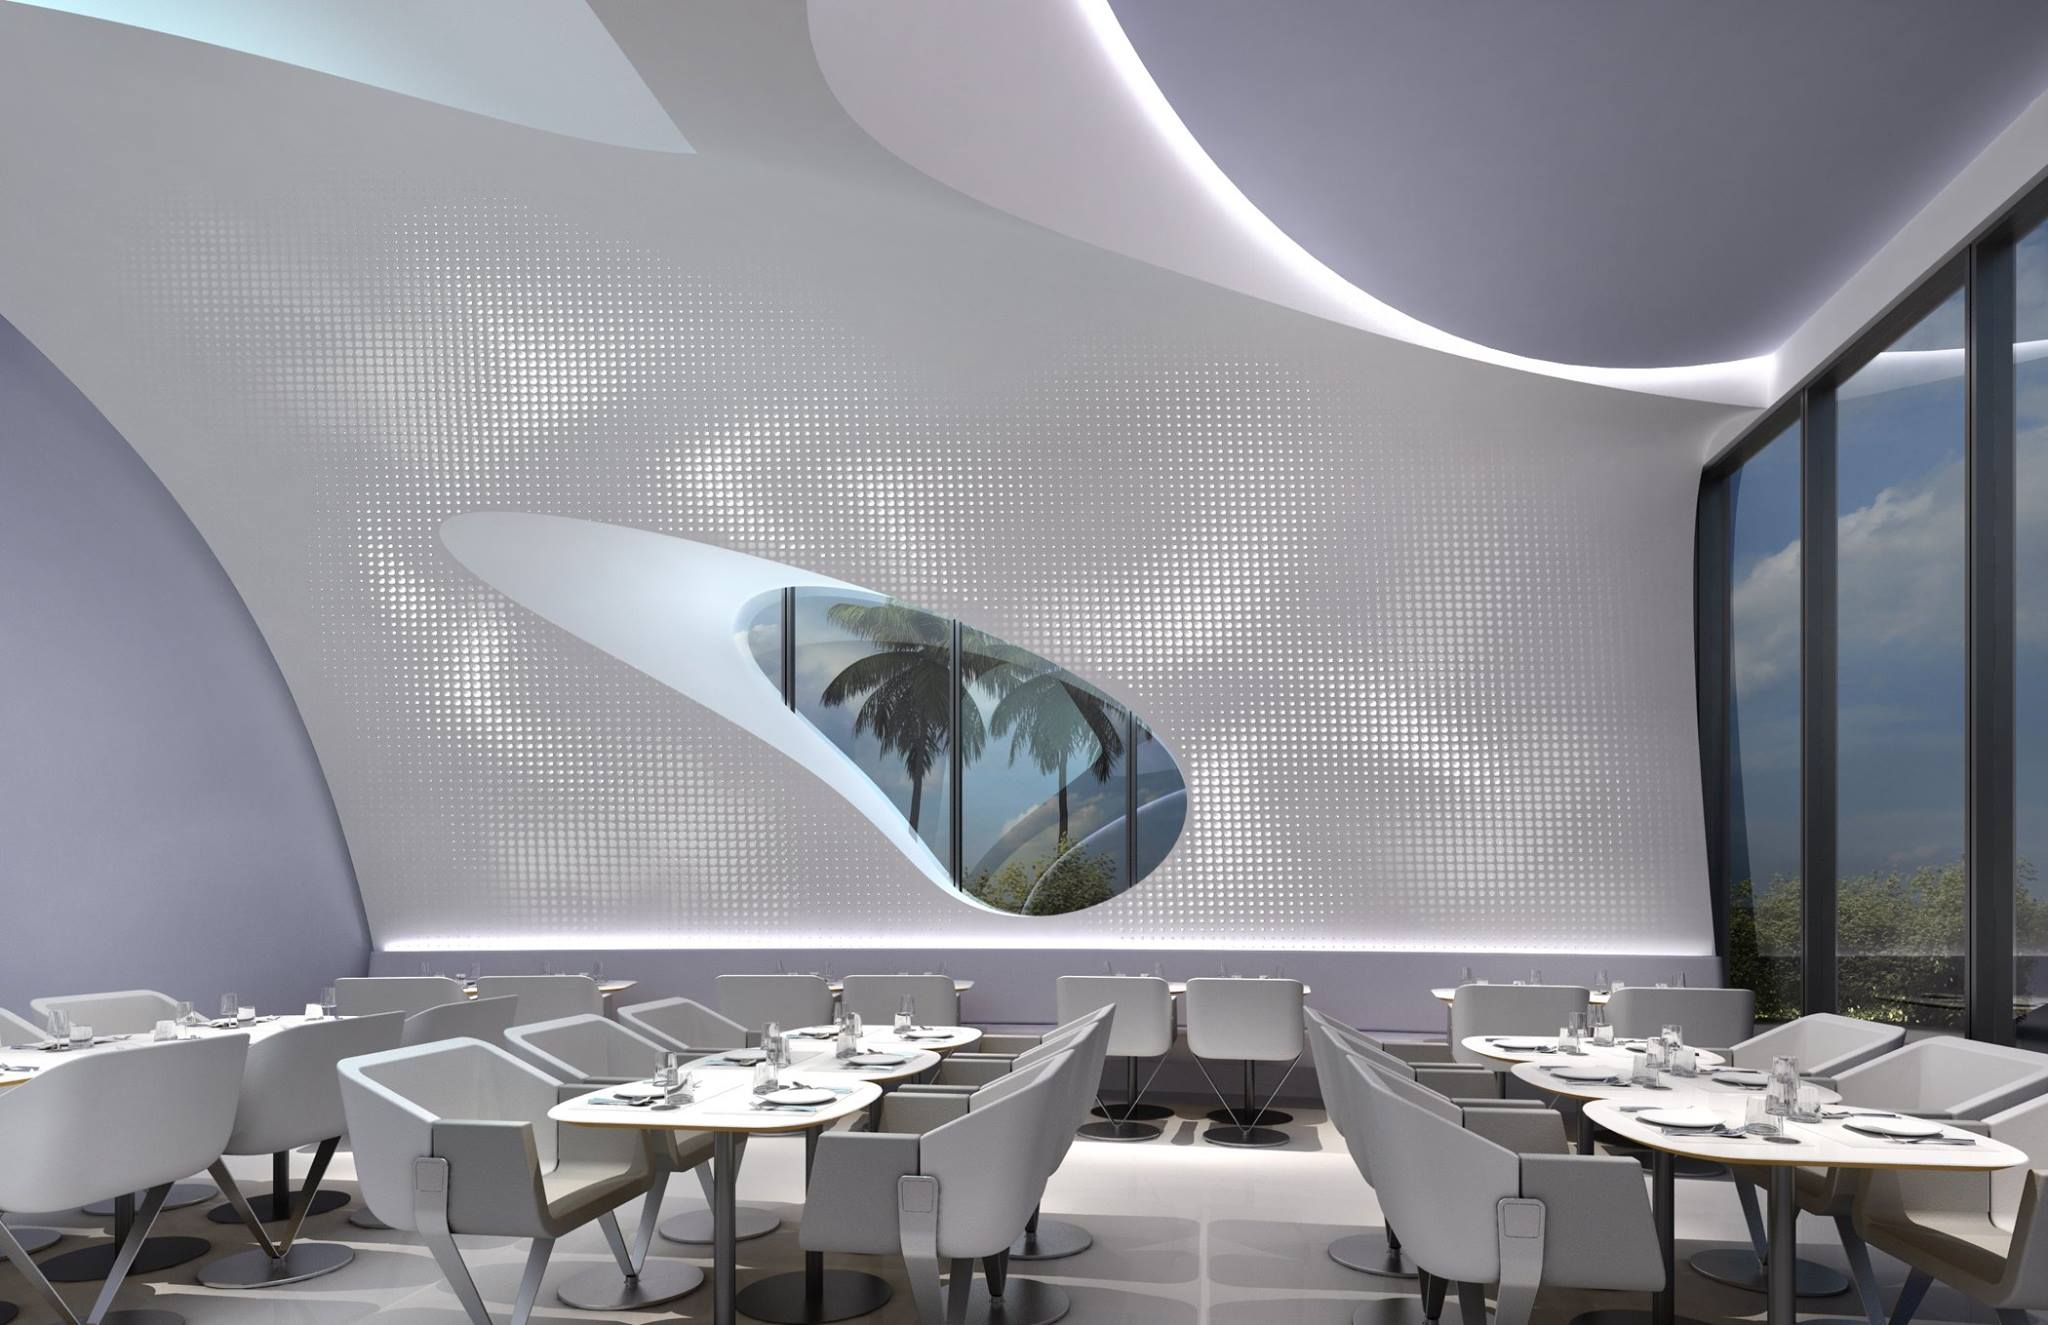 Preview of Switch Restaurant Dubai Abu Dhabi 2016 & Preview of Switch Restaurant Dubai Abu Dhabi 2016 | Karim Rashid ...